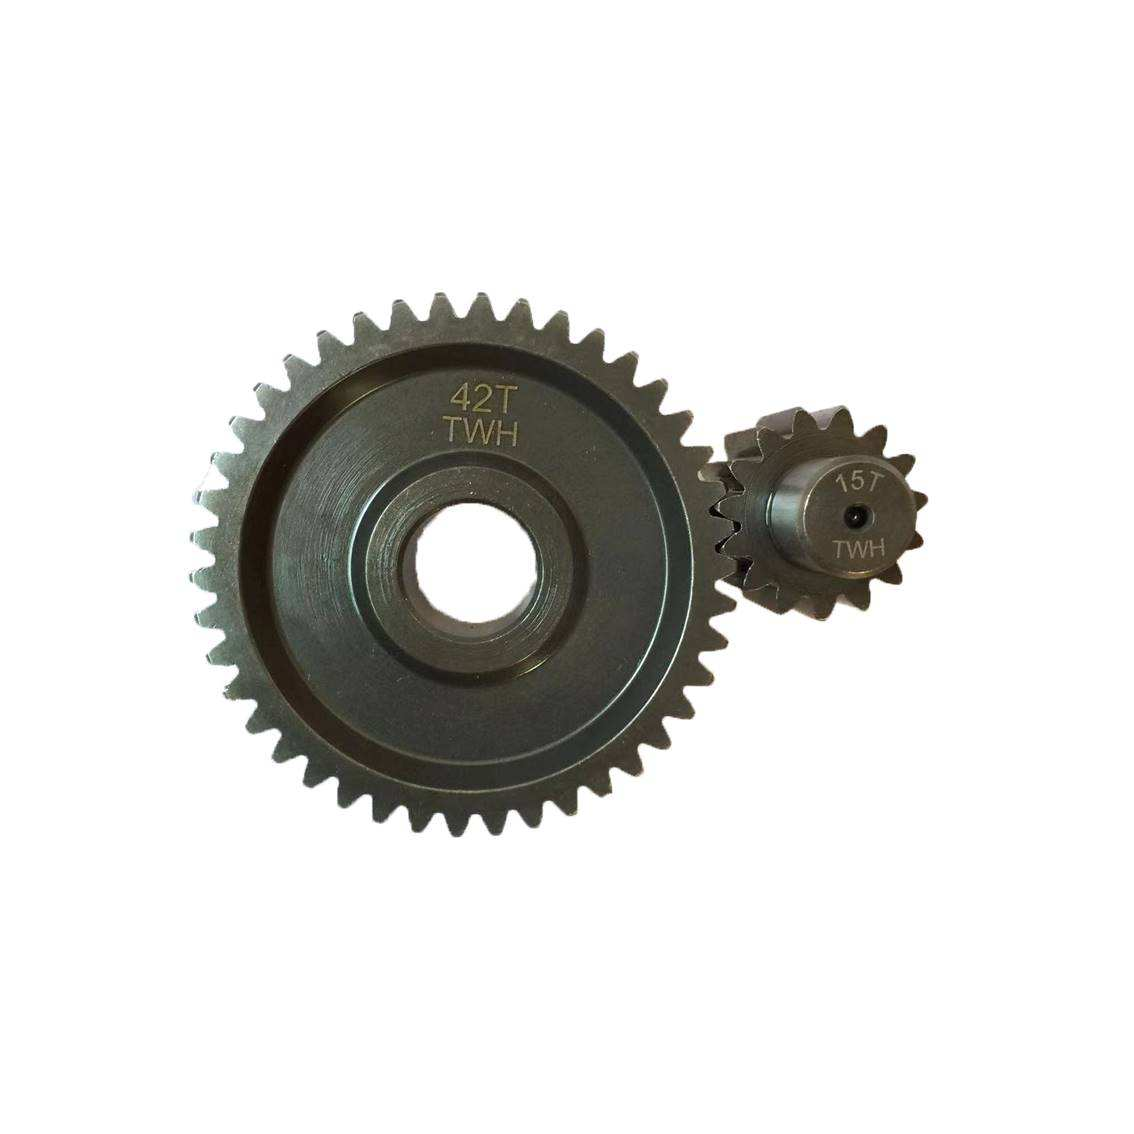 Motorcycle transmission rear gear set for Honda ZX